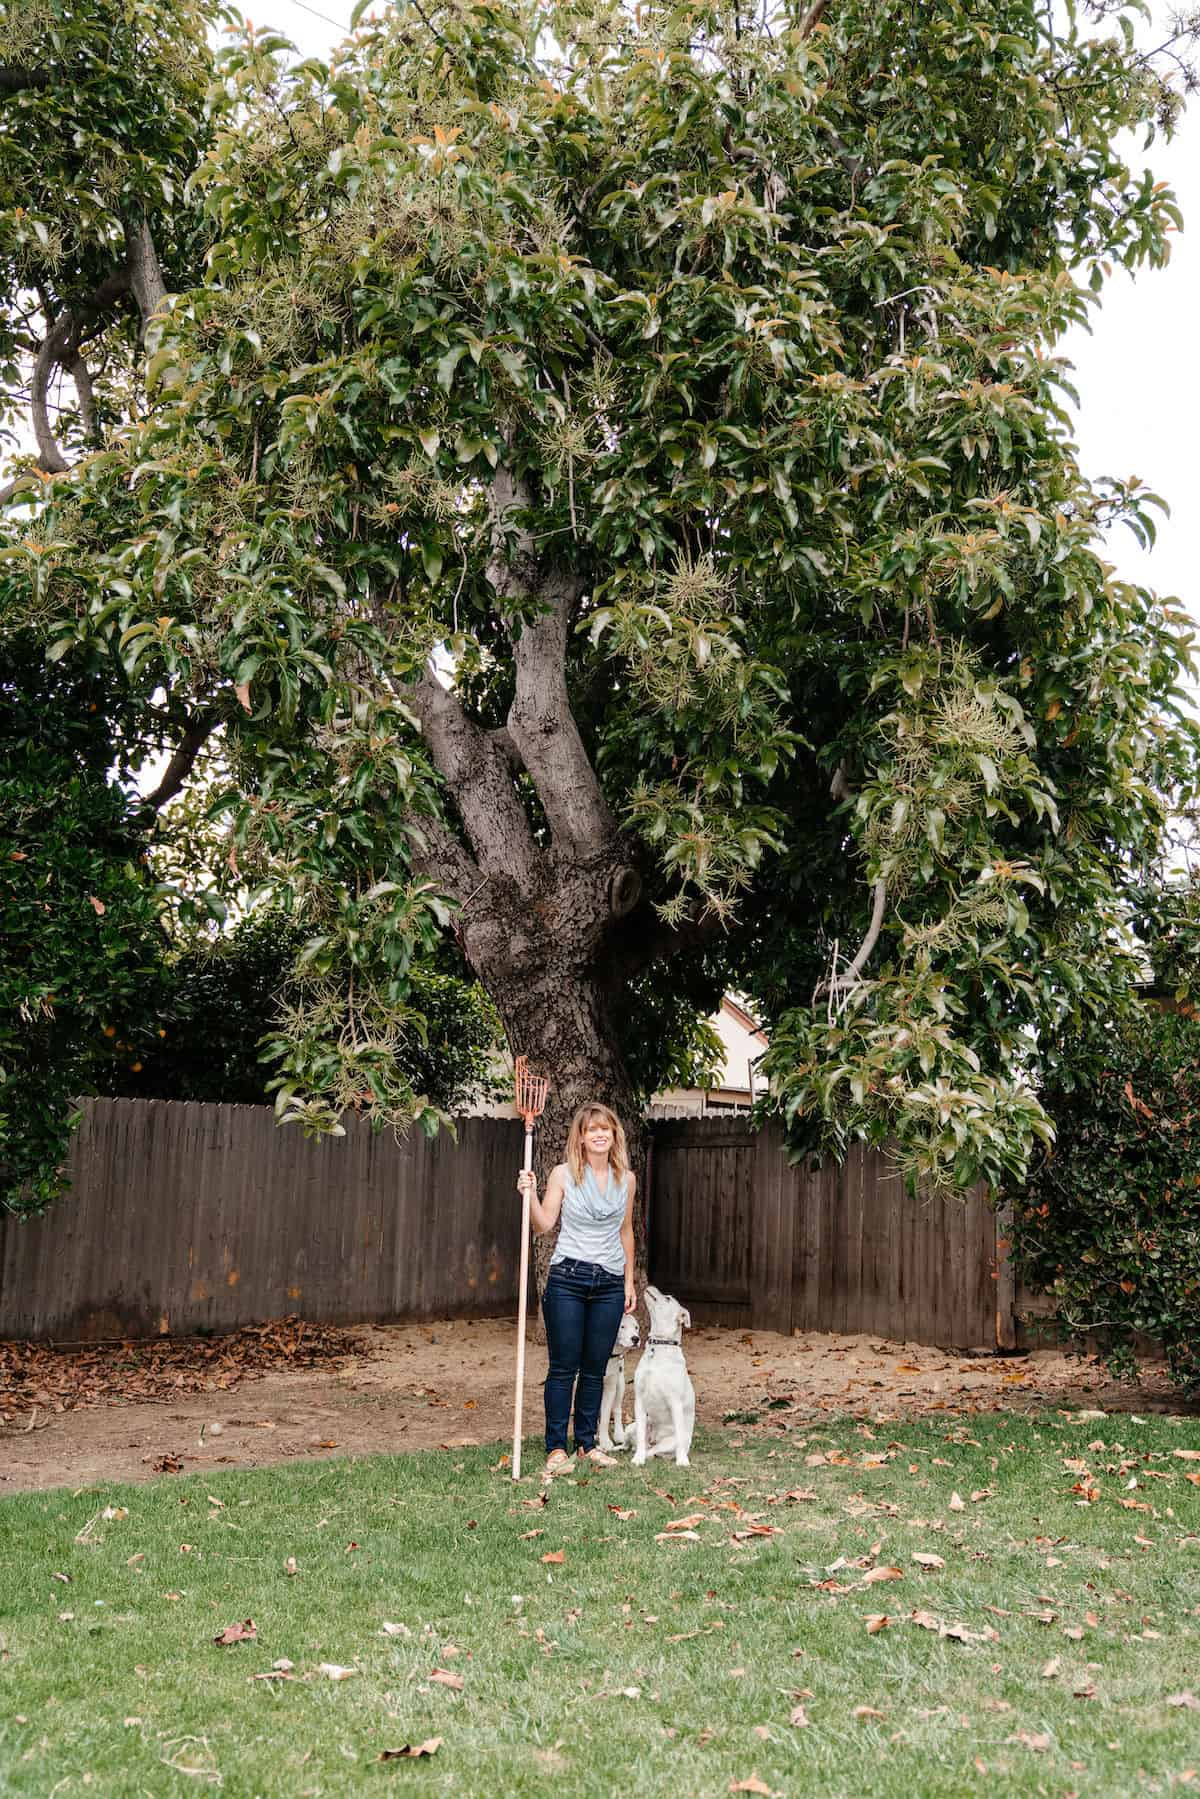 Woman standing next to a white dog under a large avocado tree.